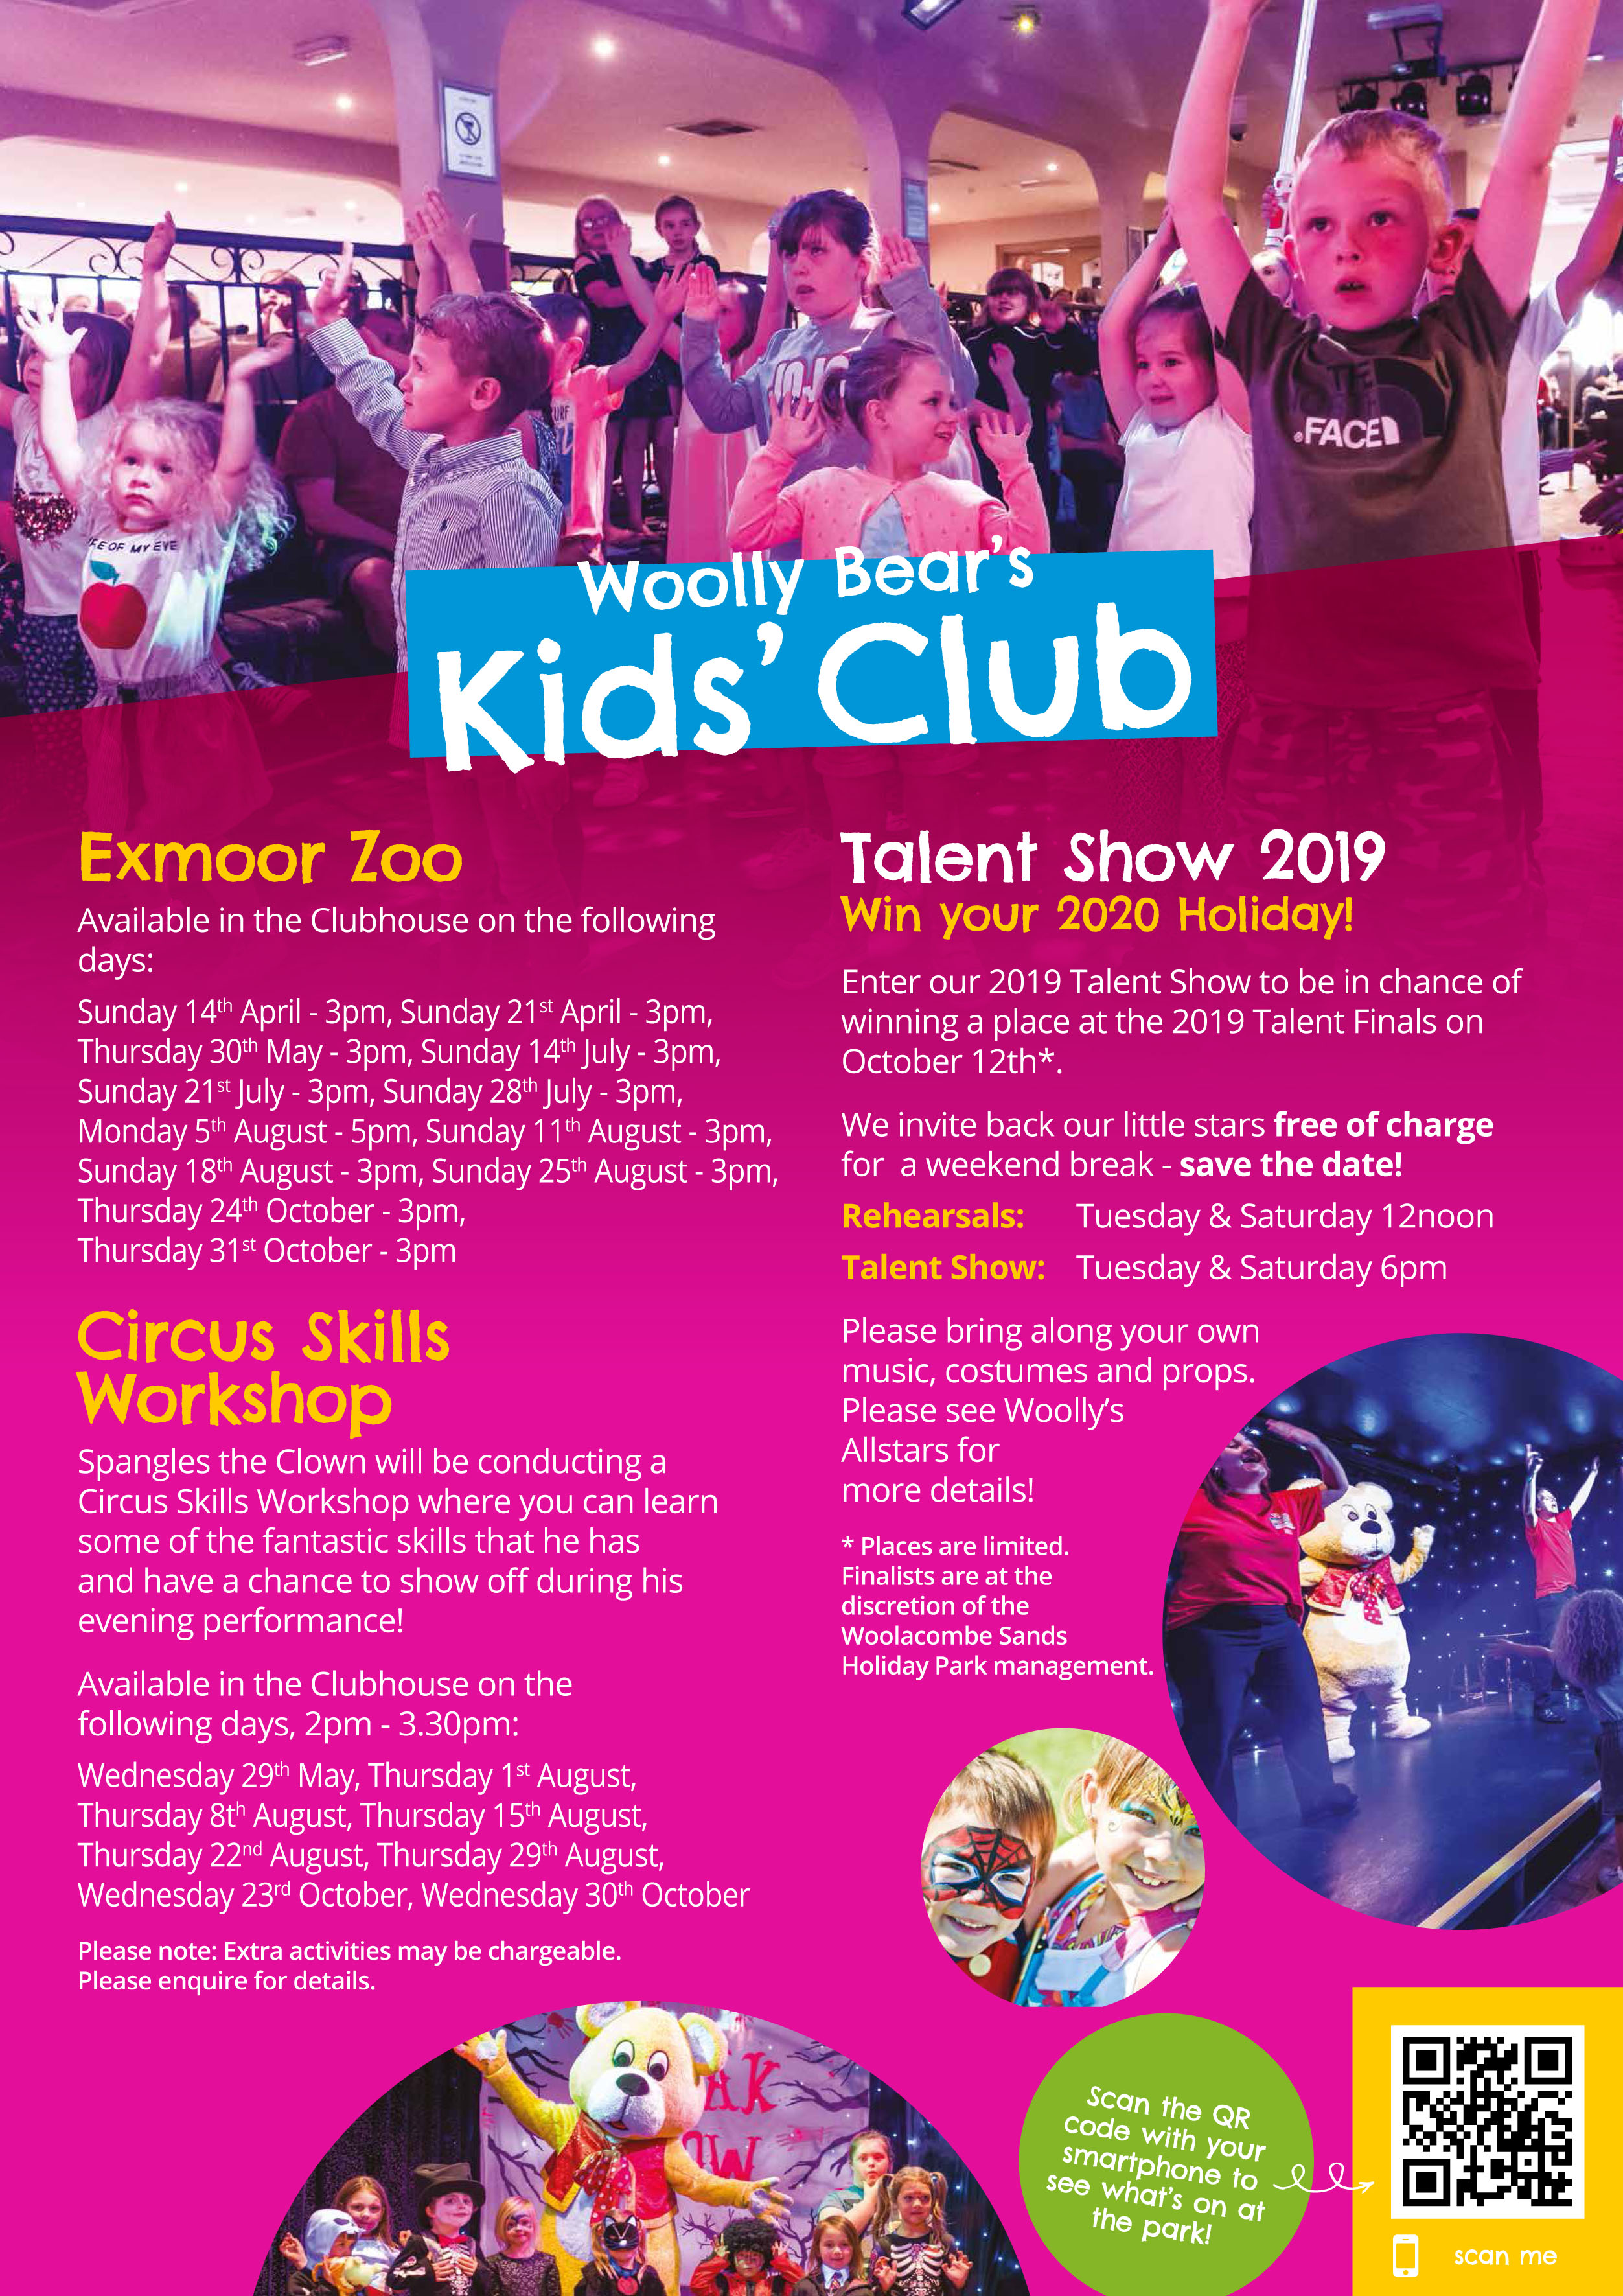 Woolly's Kids Clubs